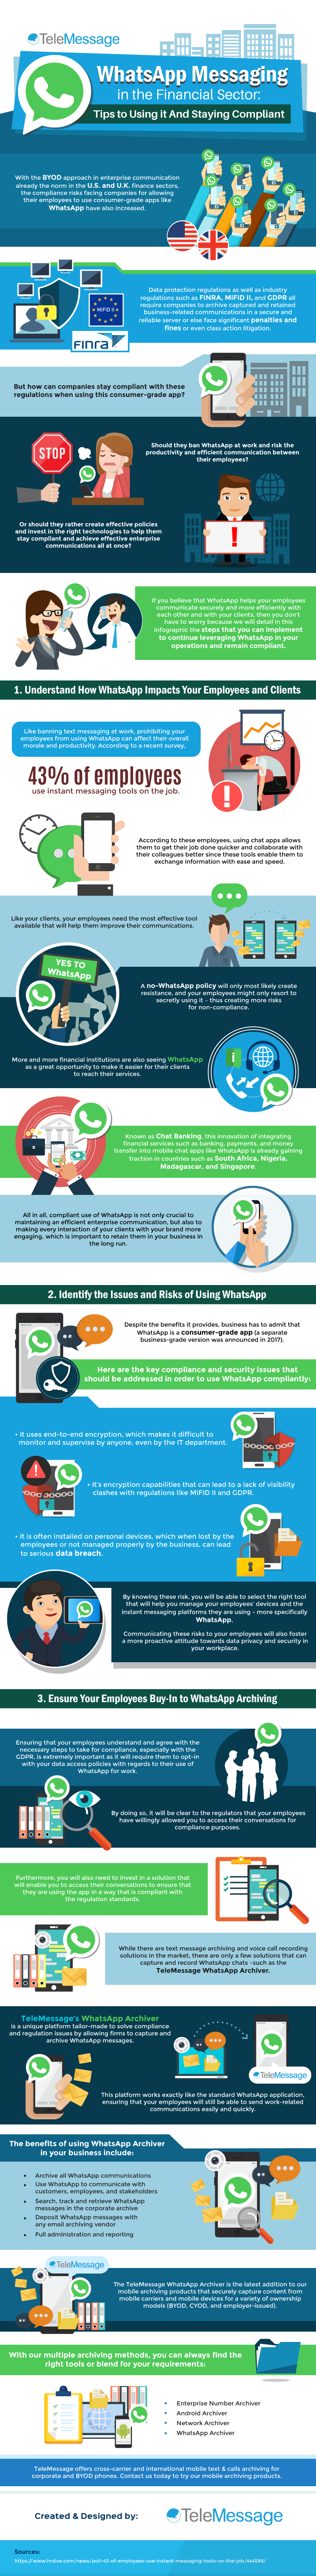 WhatsApp messaging in the financial sector #infographic